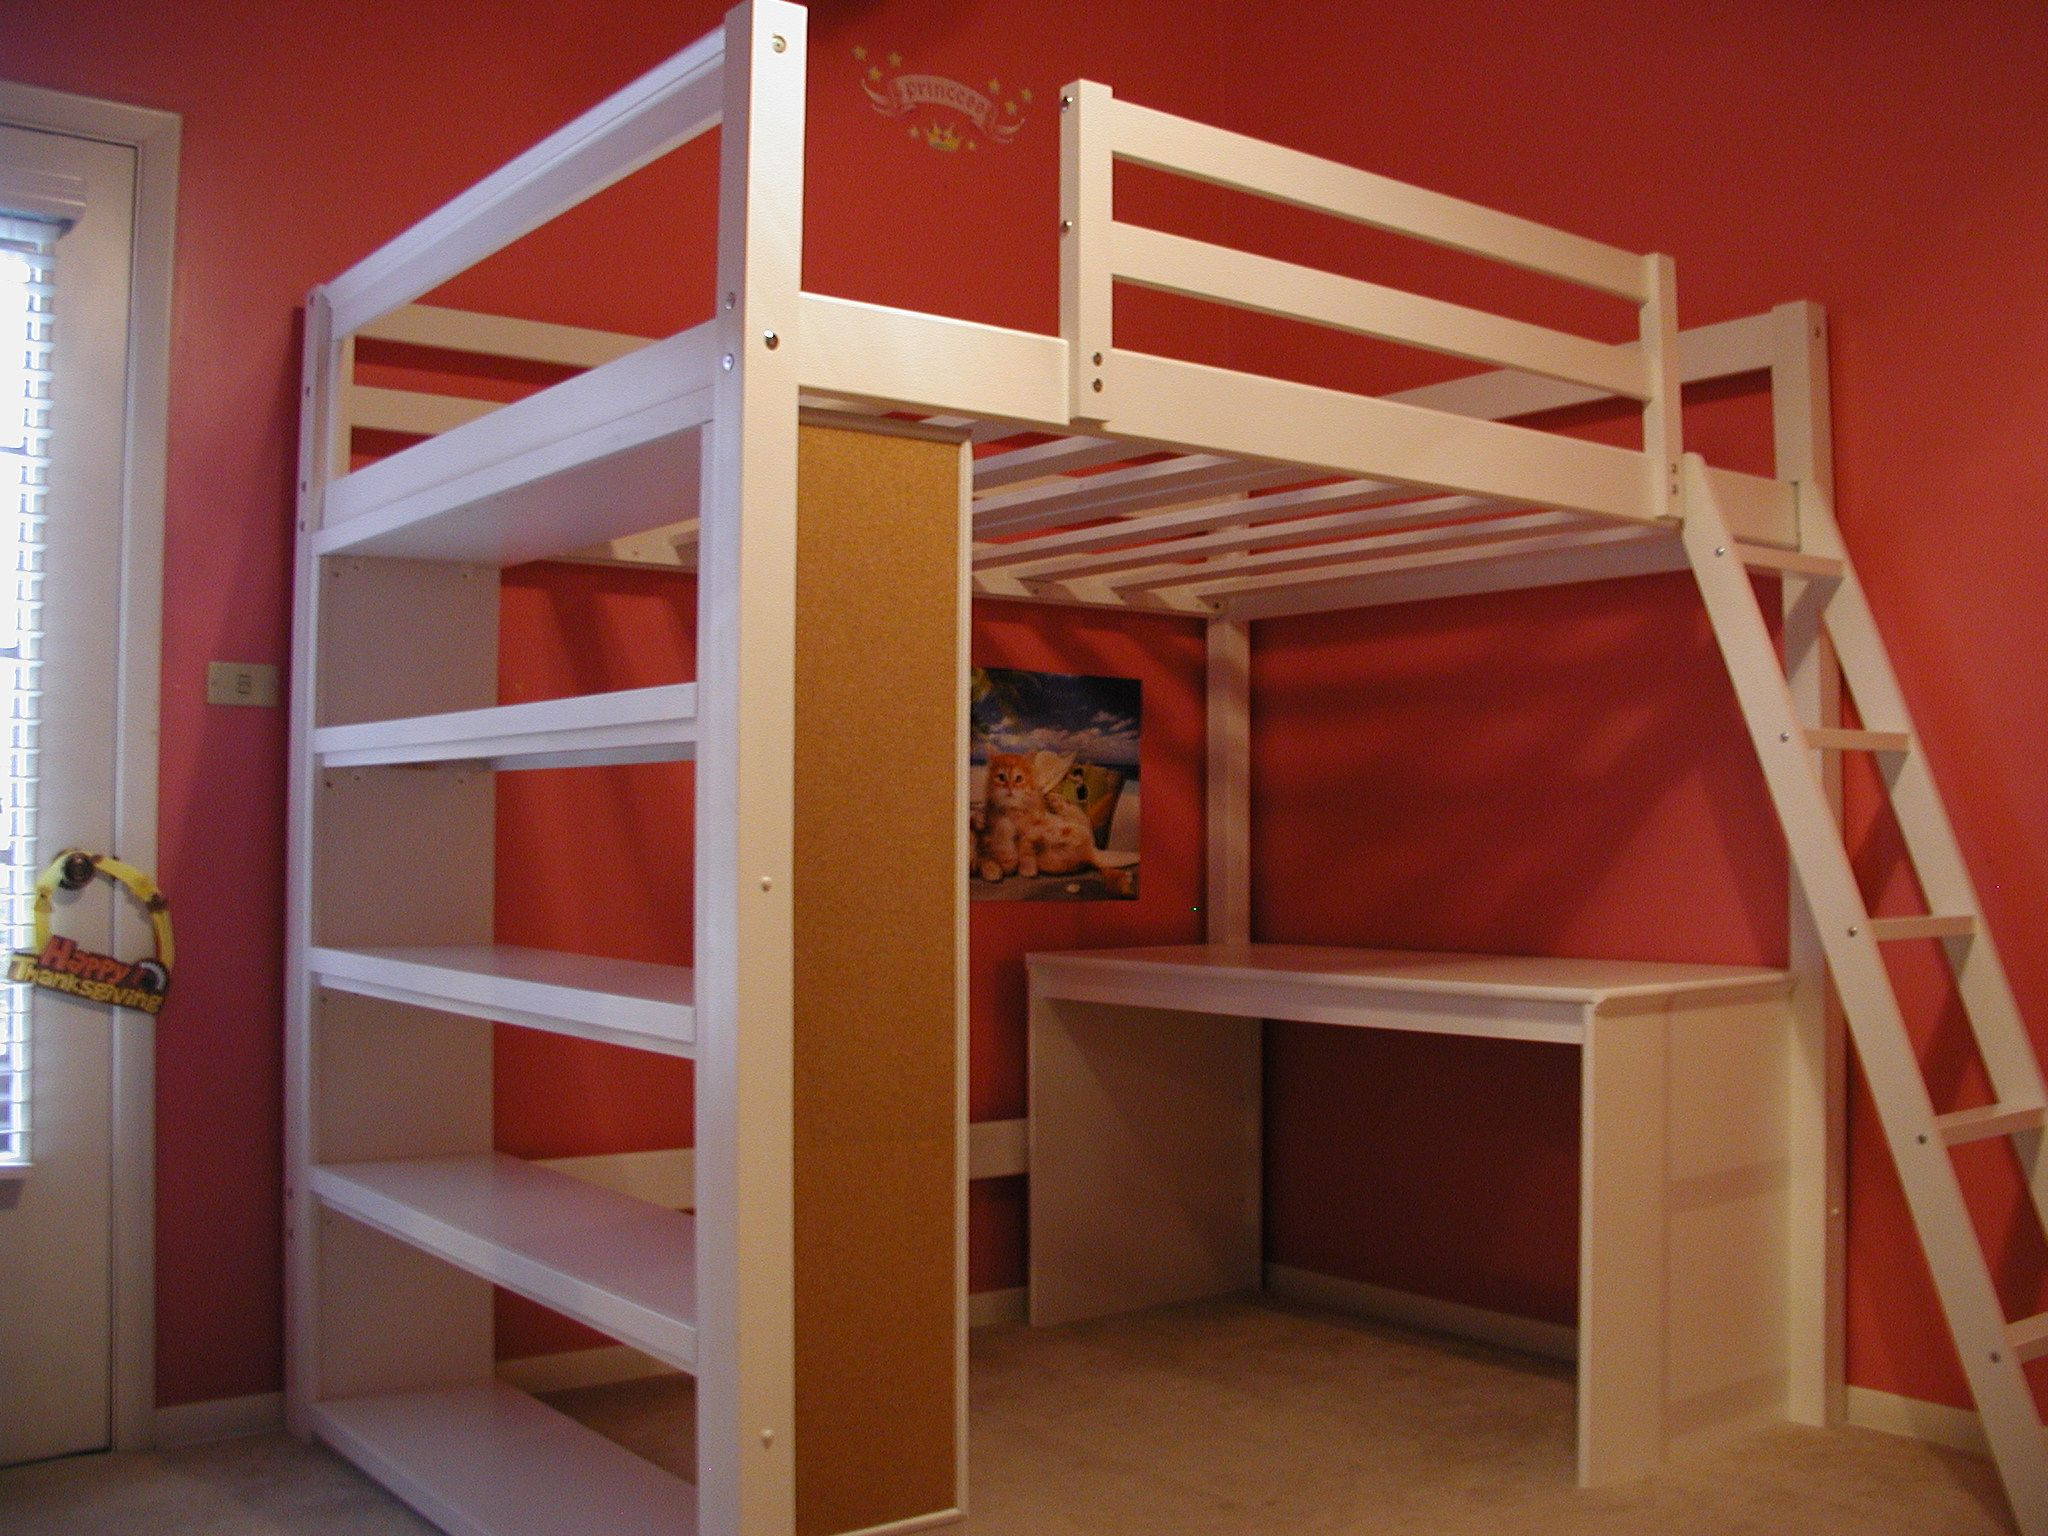 Full size white wood loft bed with long tall shelves and